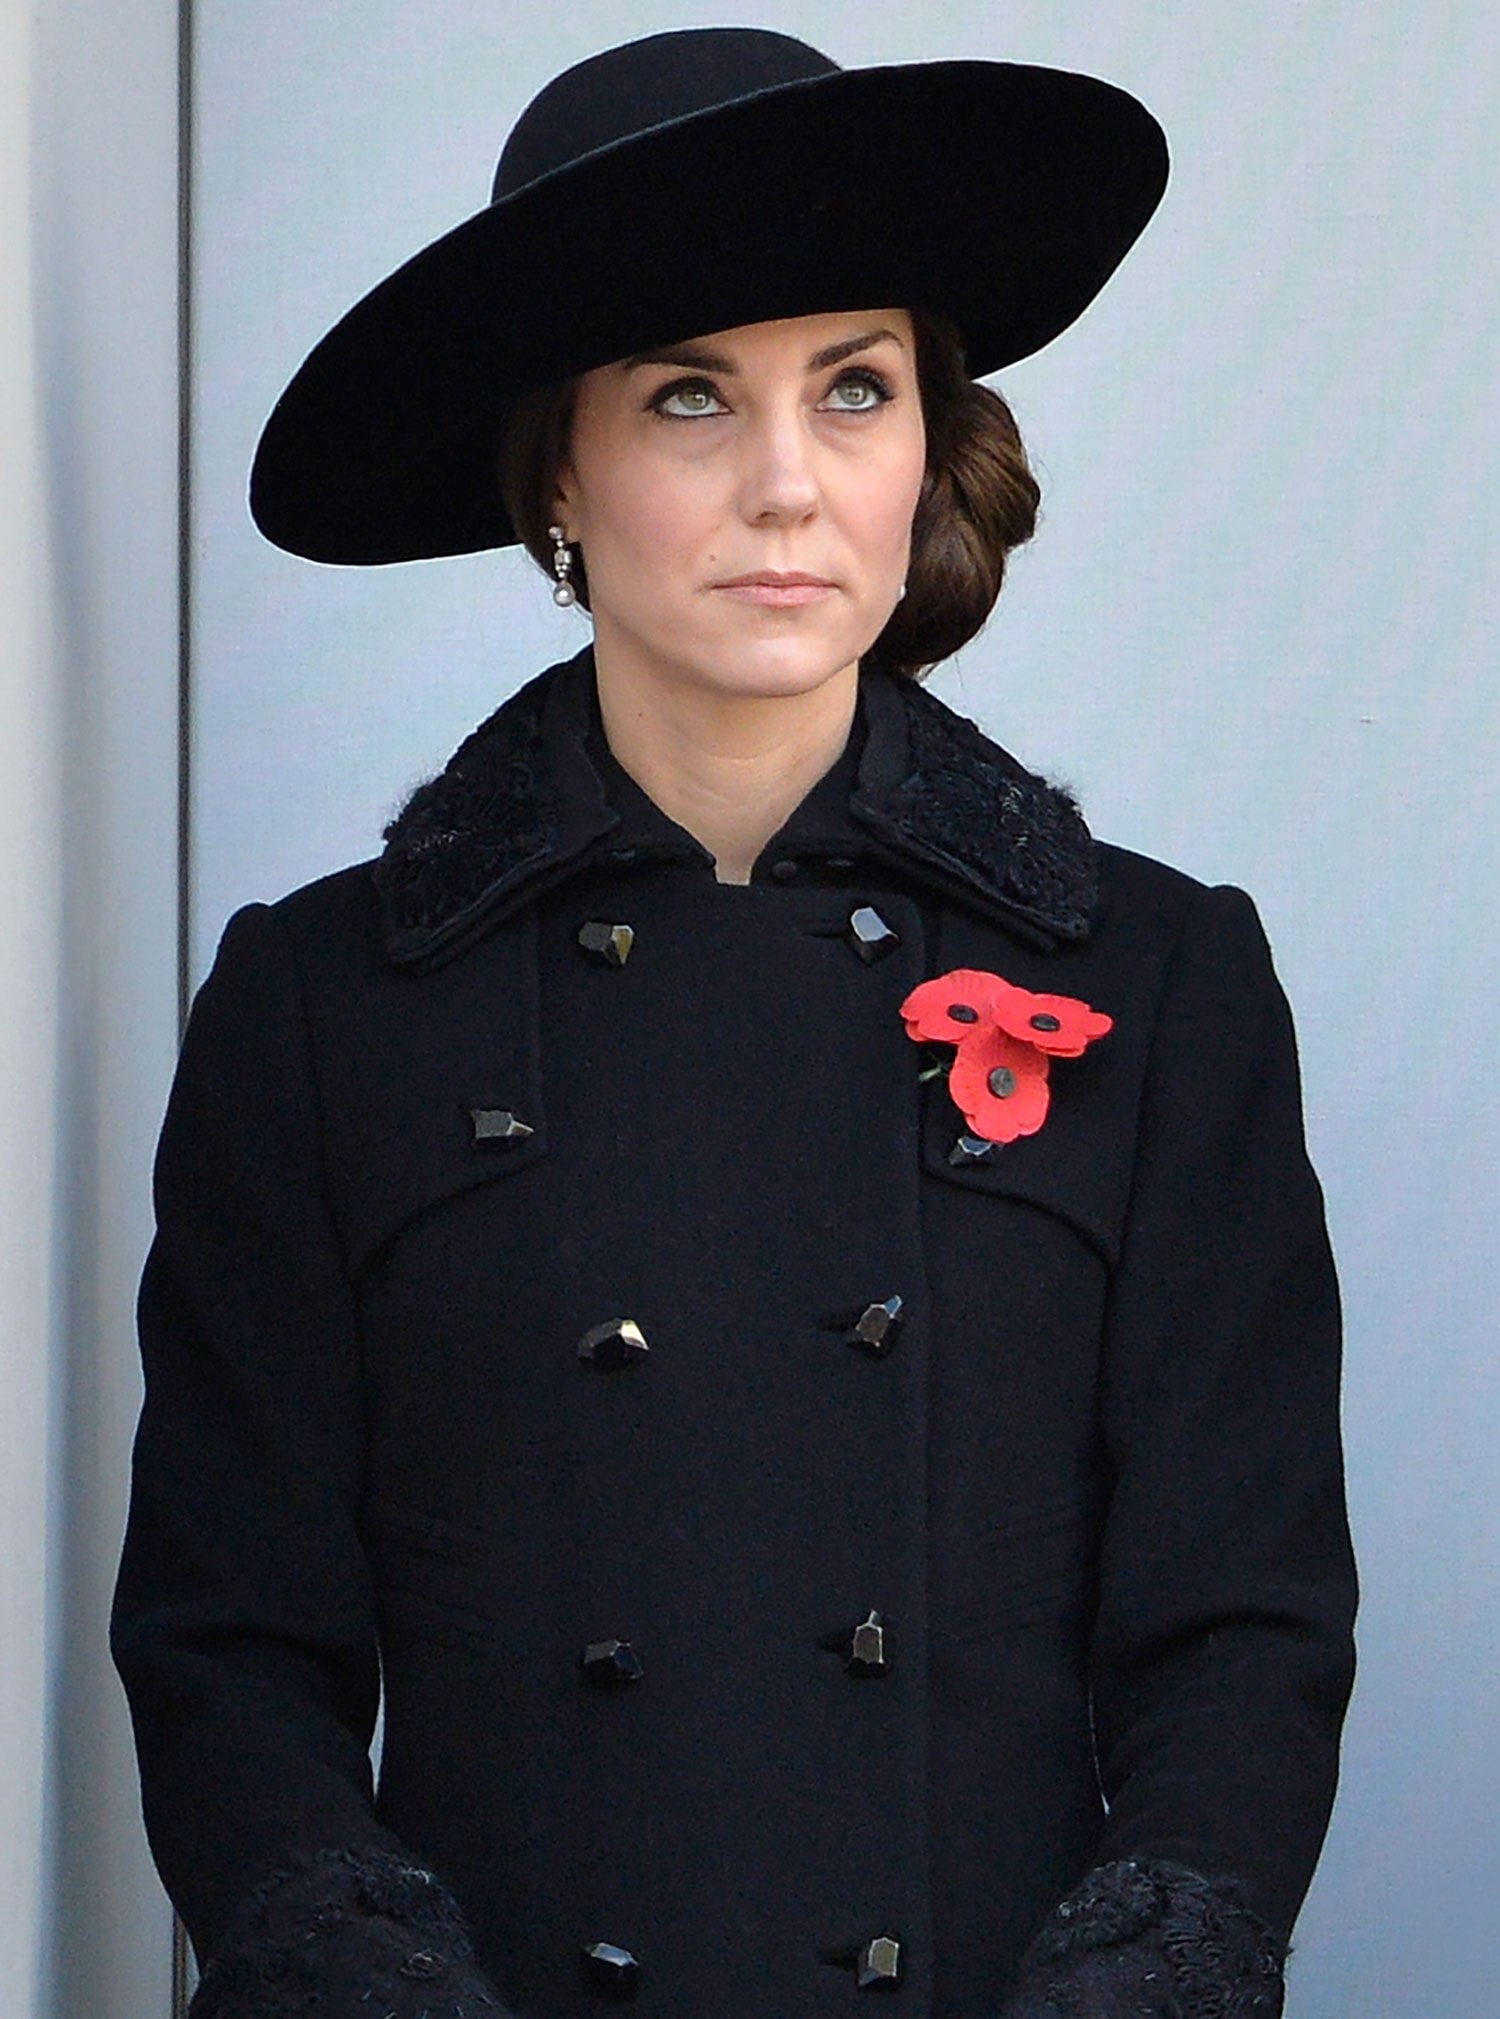 Members of the Royal Family attend Remembrance Sunday at the Cenotaph